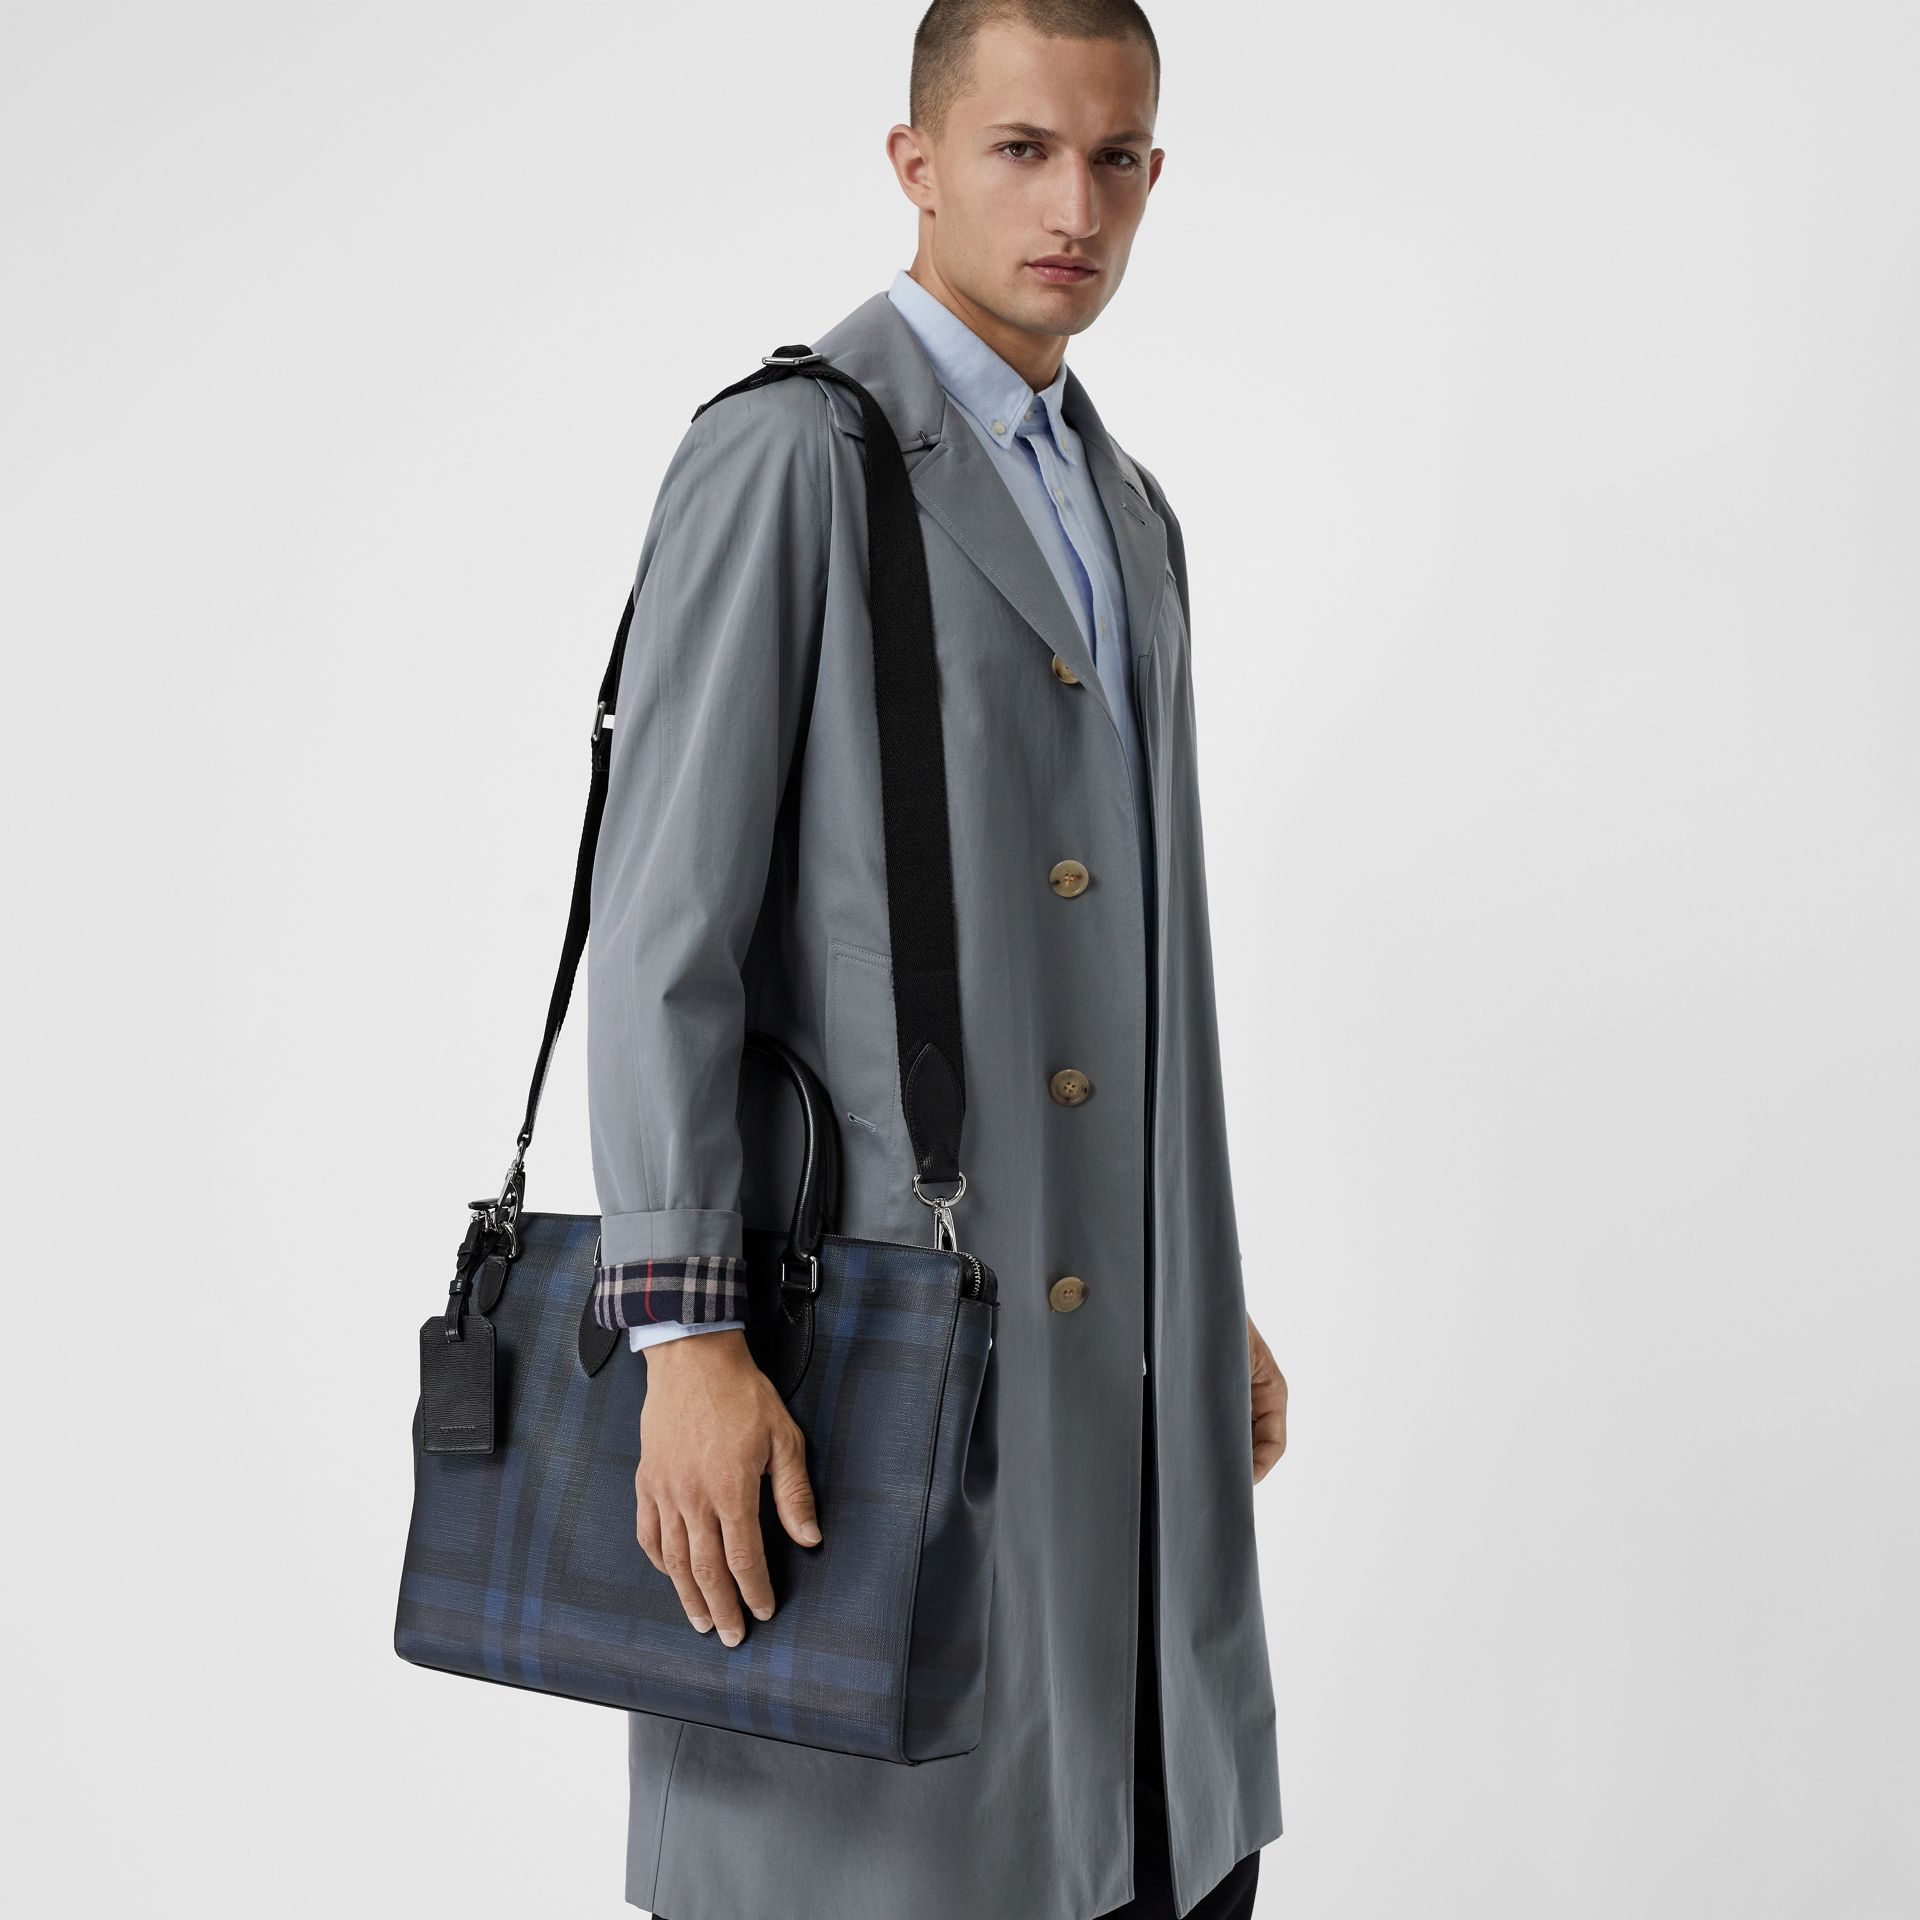 Large London Check Briefcase in Navy/black - Men | Burberry United Kingdom - gallery image 3